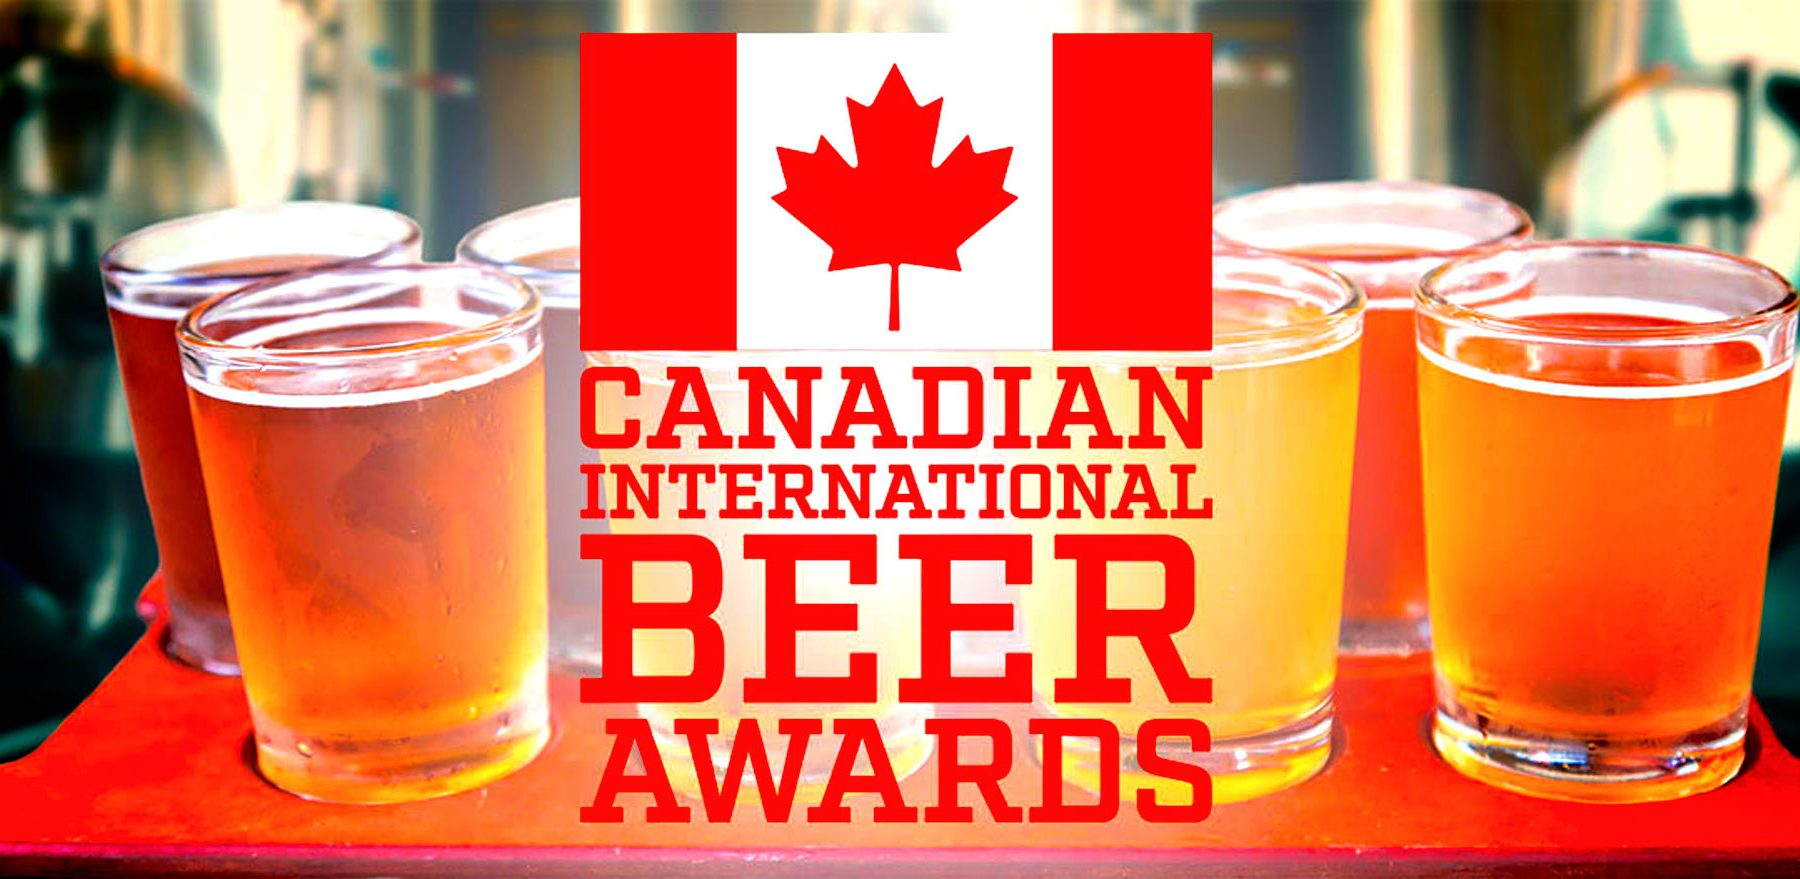 Canadian International Beer Awards (CIBA) 2018 Winners